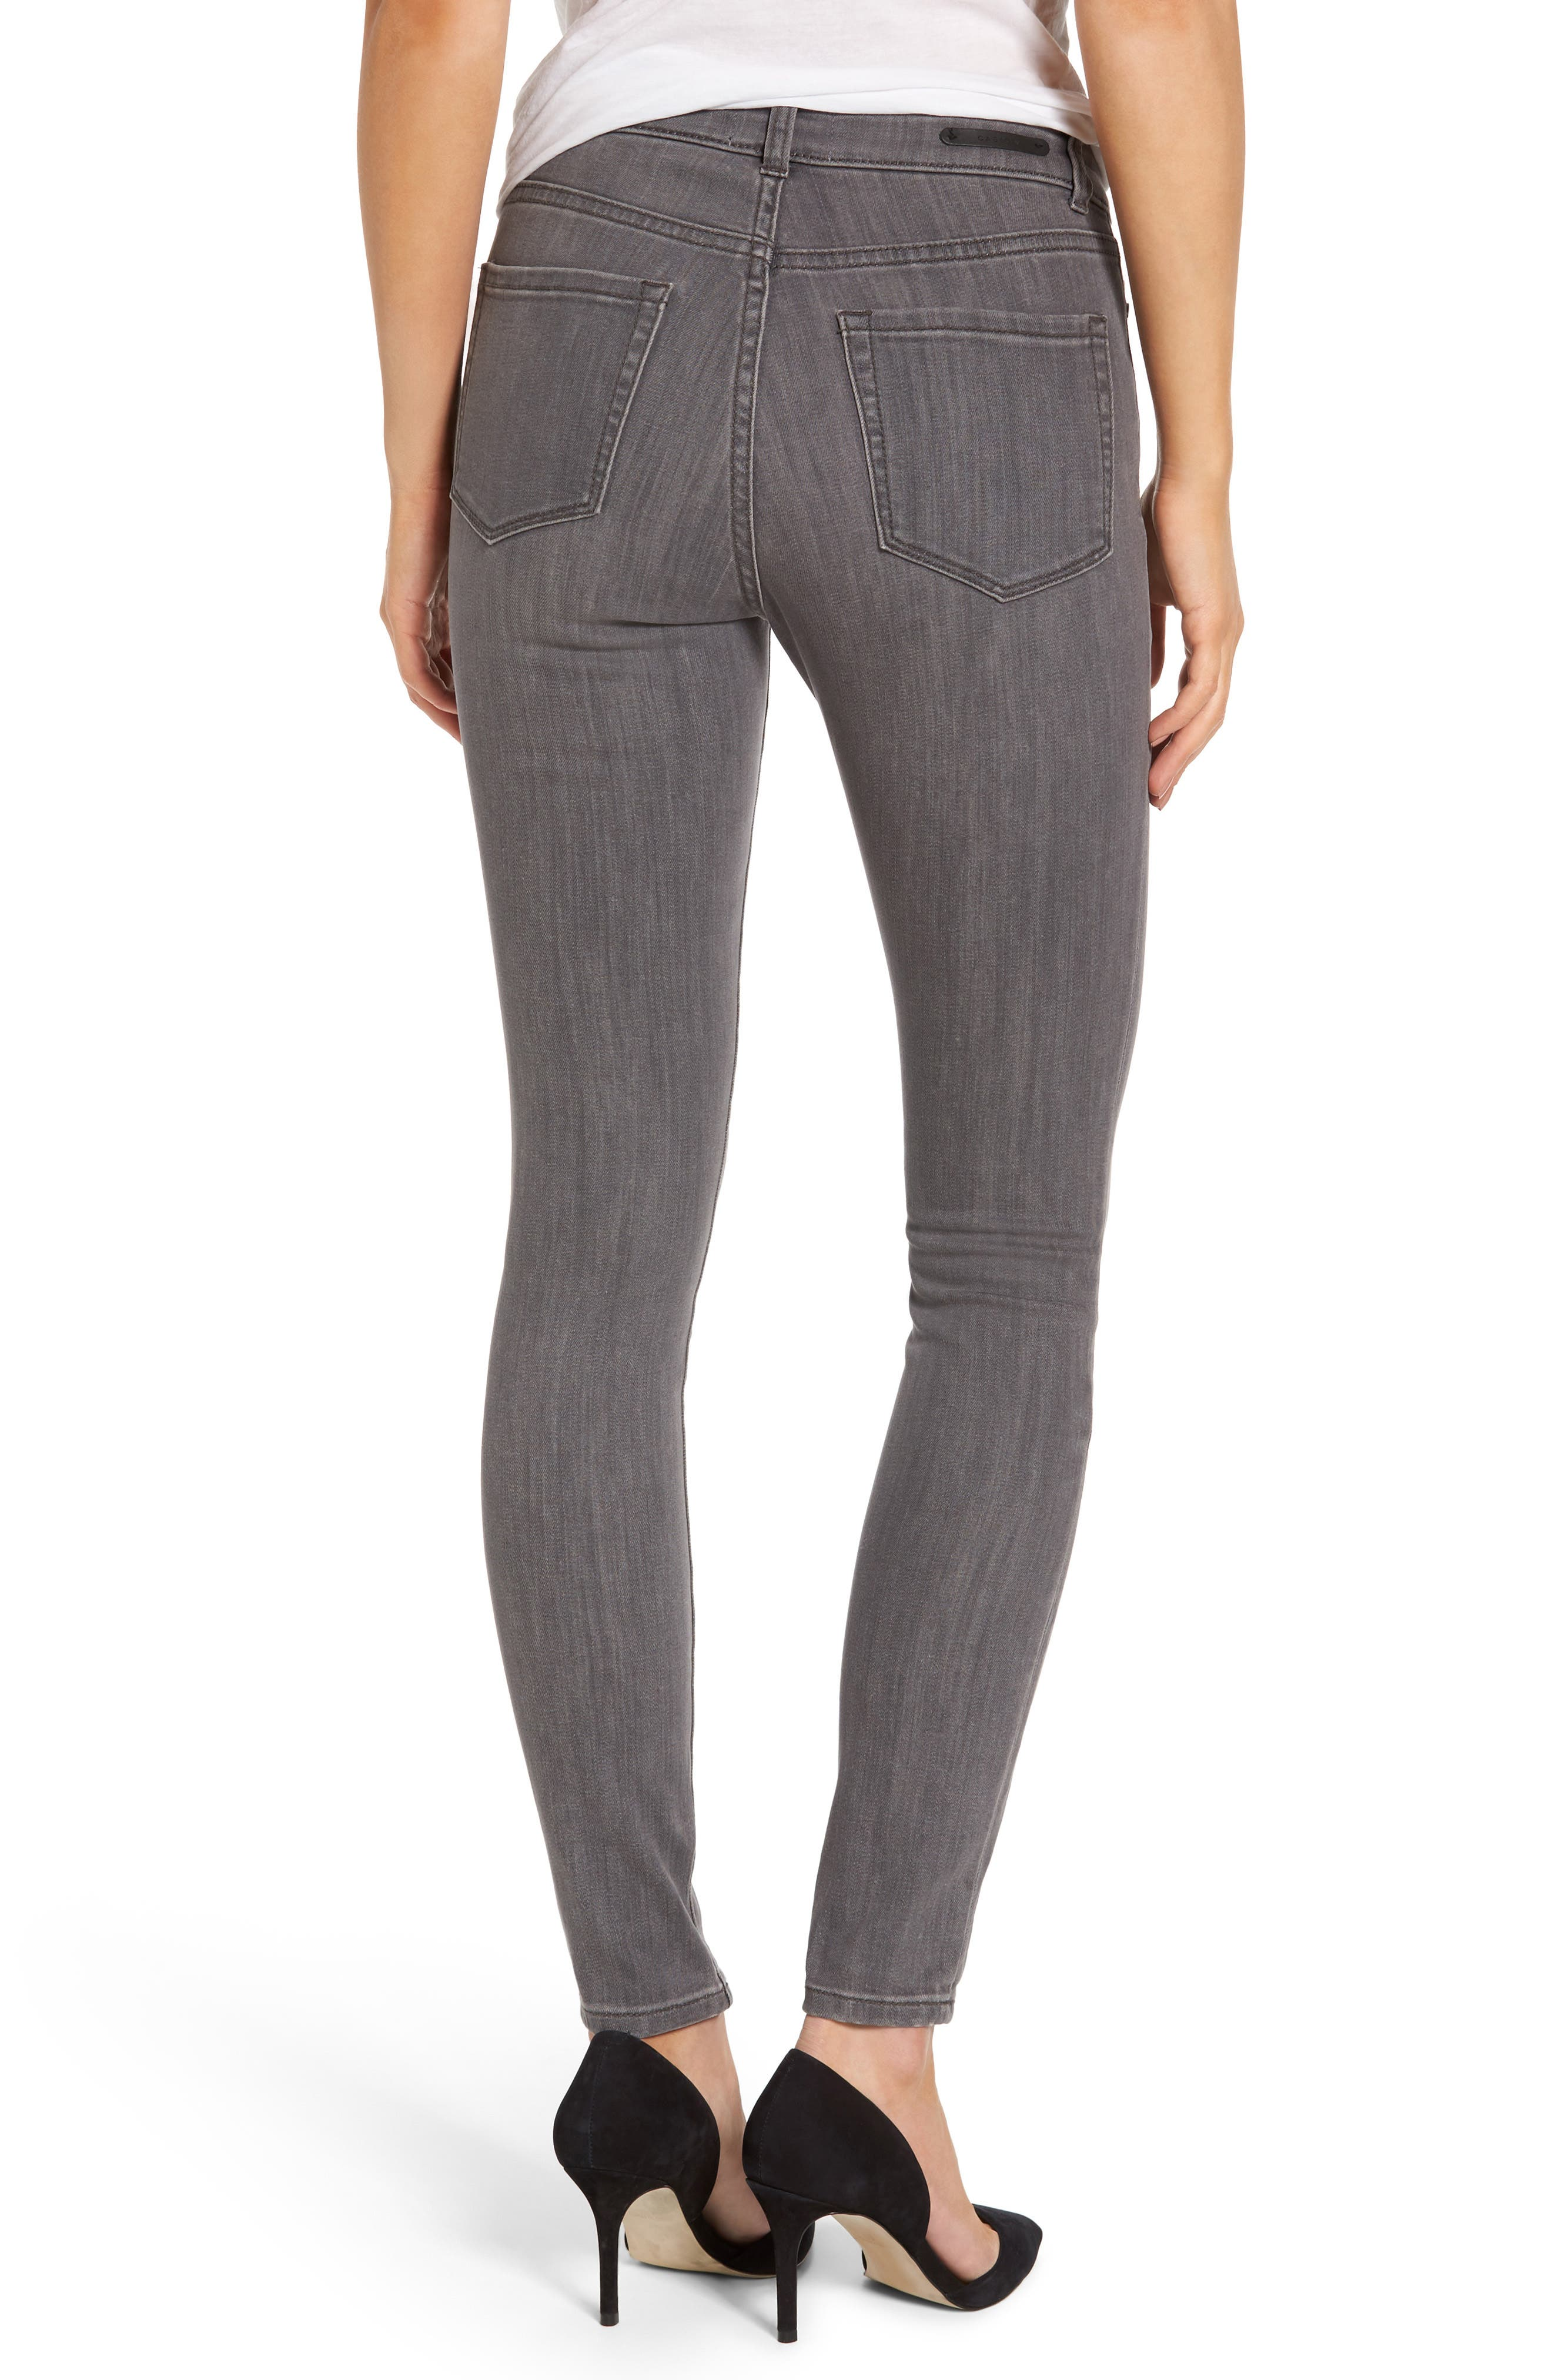 Stretch Skinny Jeans,                             Alternate thumbnail 2, color,                             Grey Adoria Wash